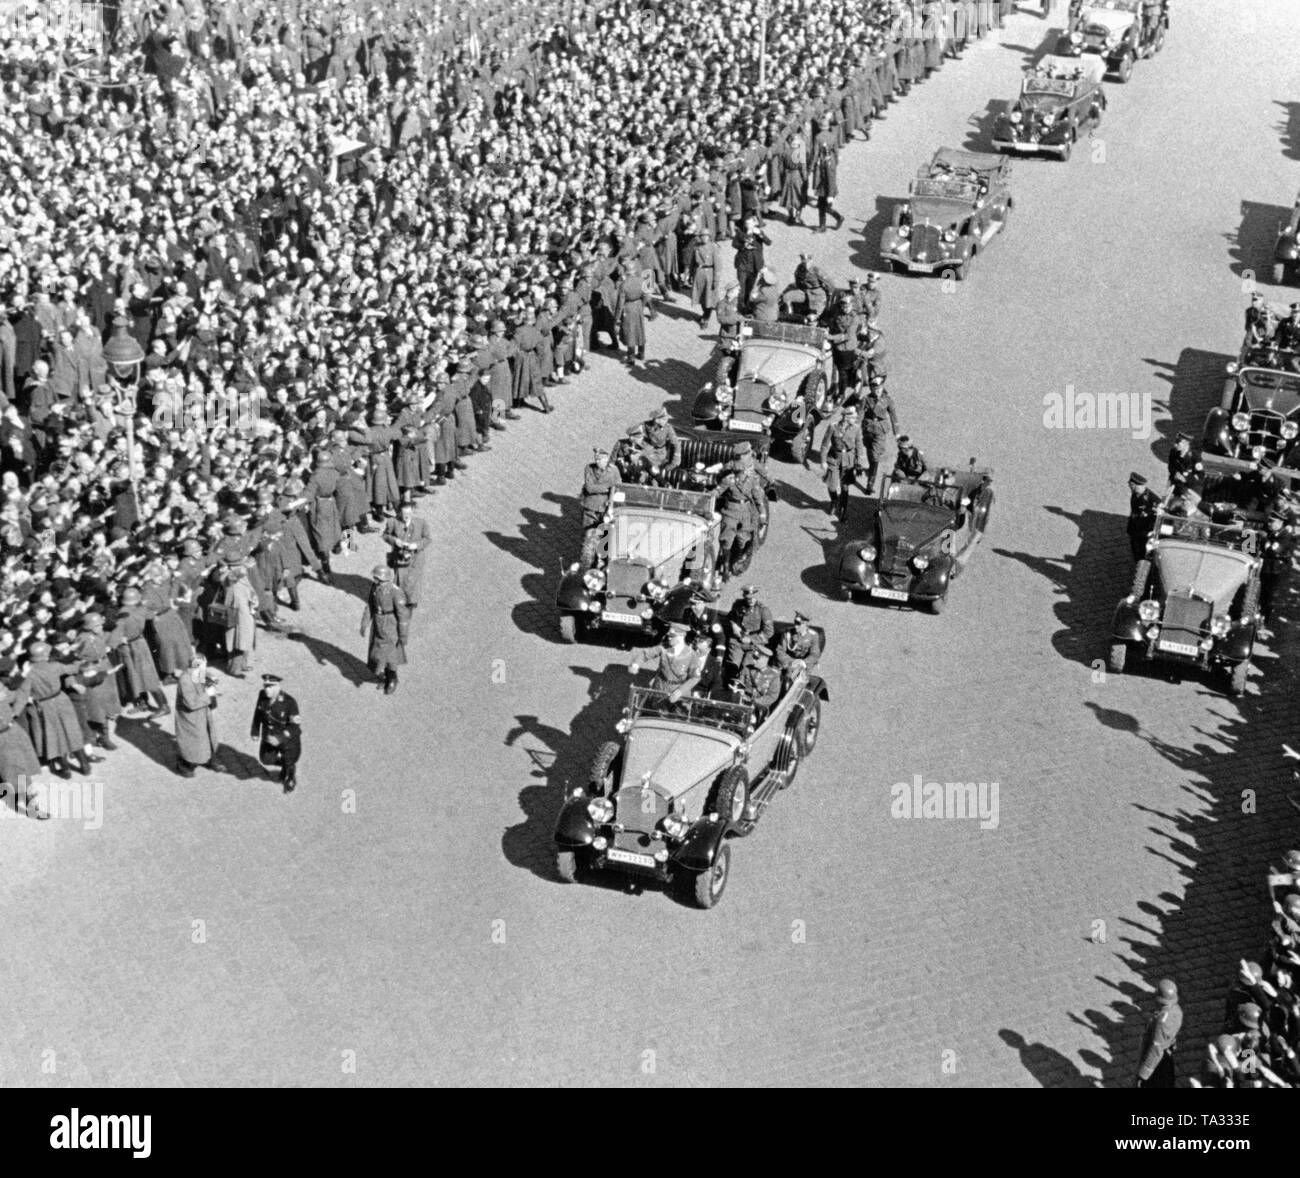 Adolf Hitler arrives on Heldenplatz in Vienna. There he announces the annexation of Austria to the German Reich. - Stock Image